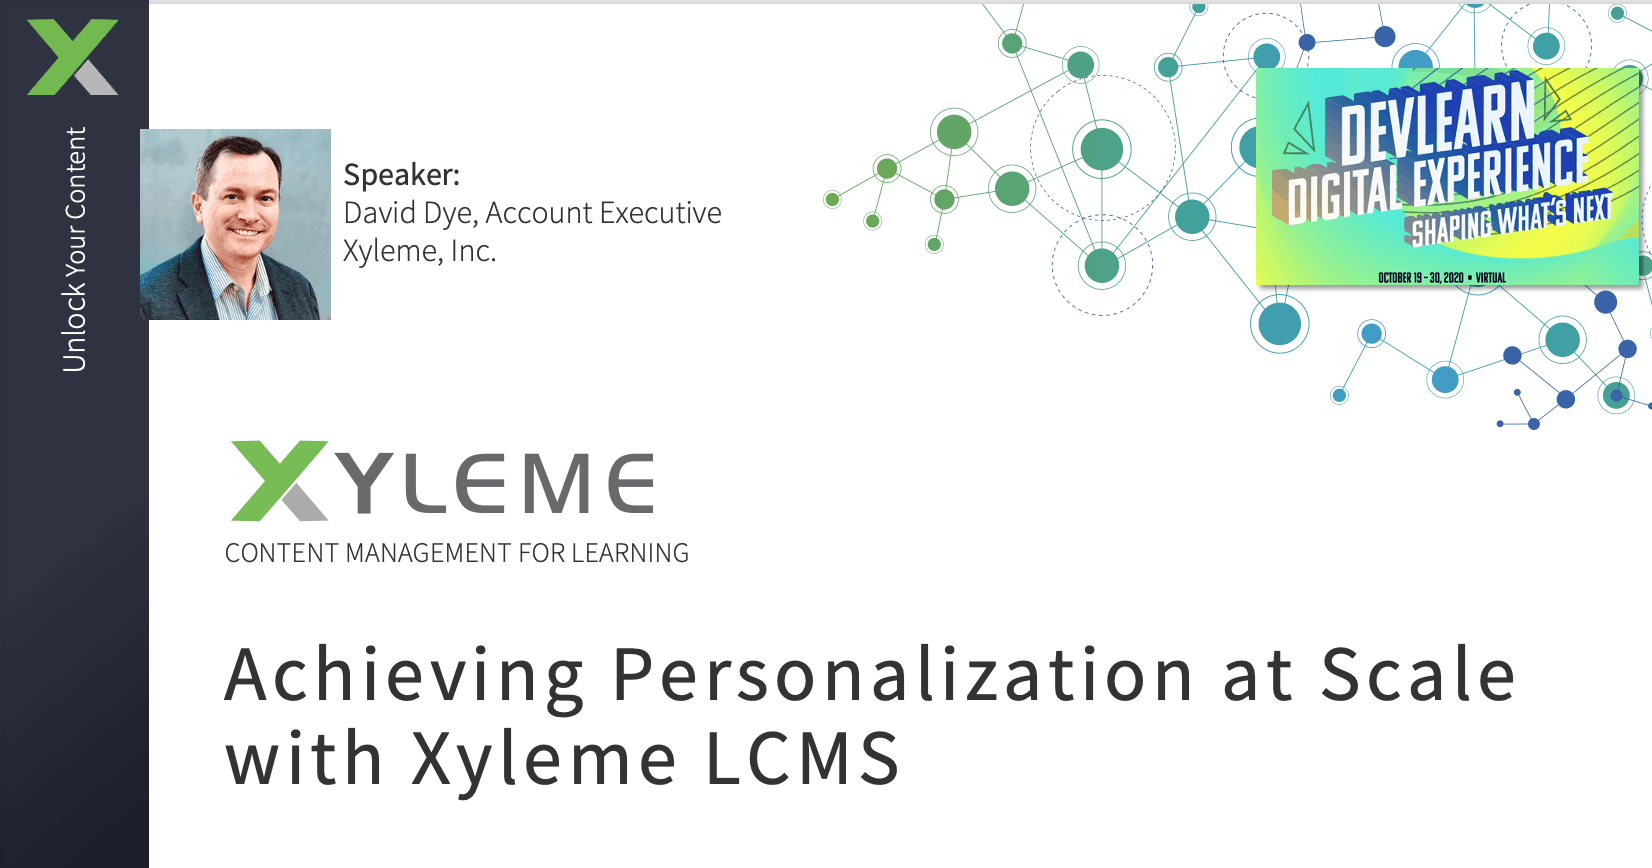 Xyleme-personalization-at-scale-xyleme-header